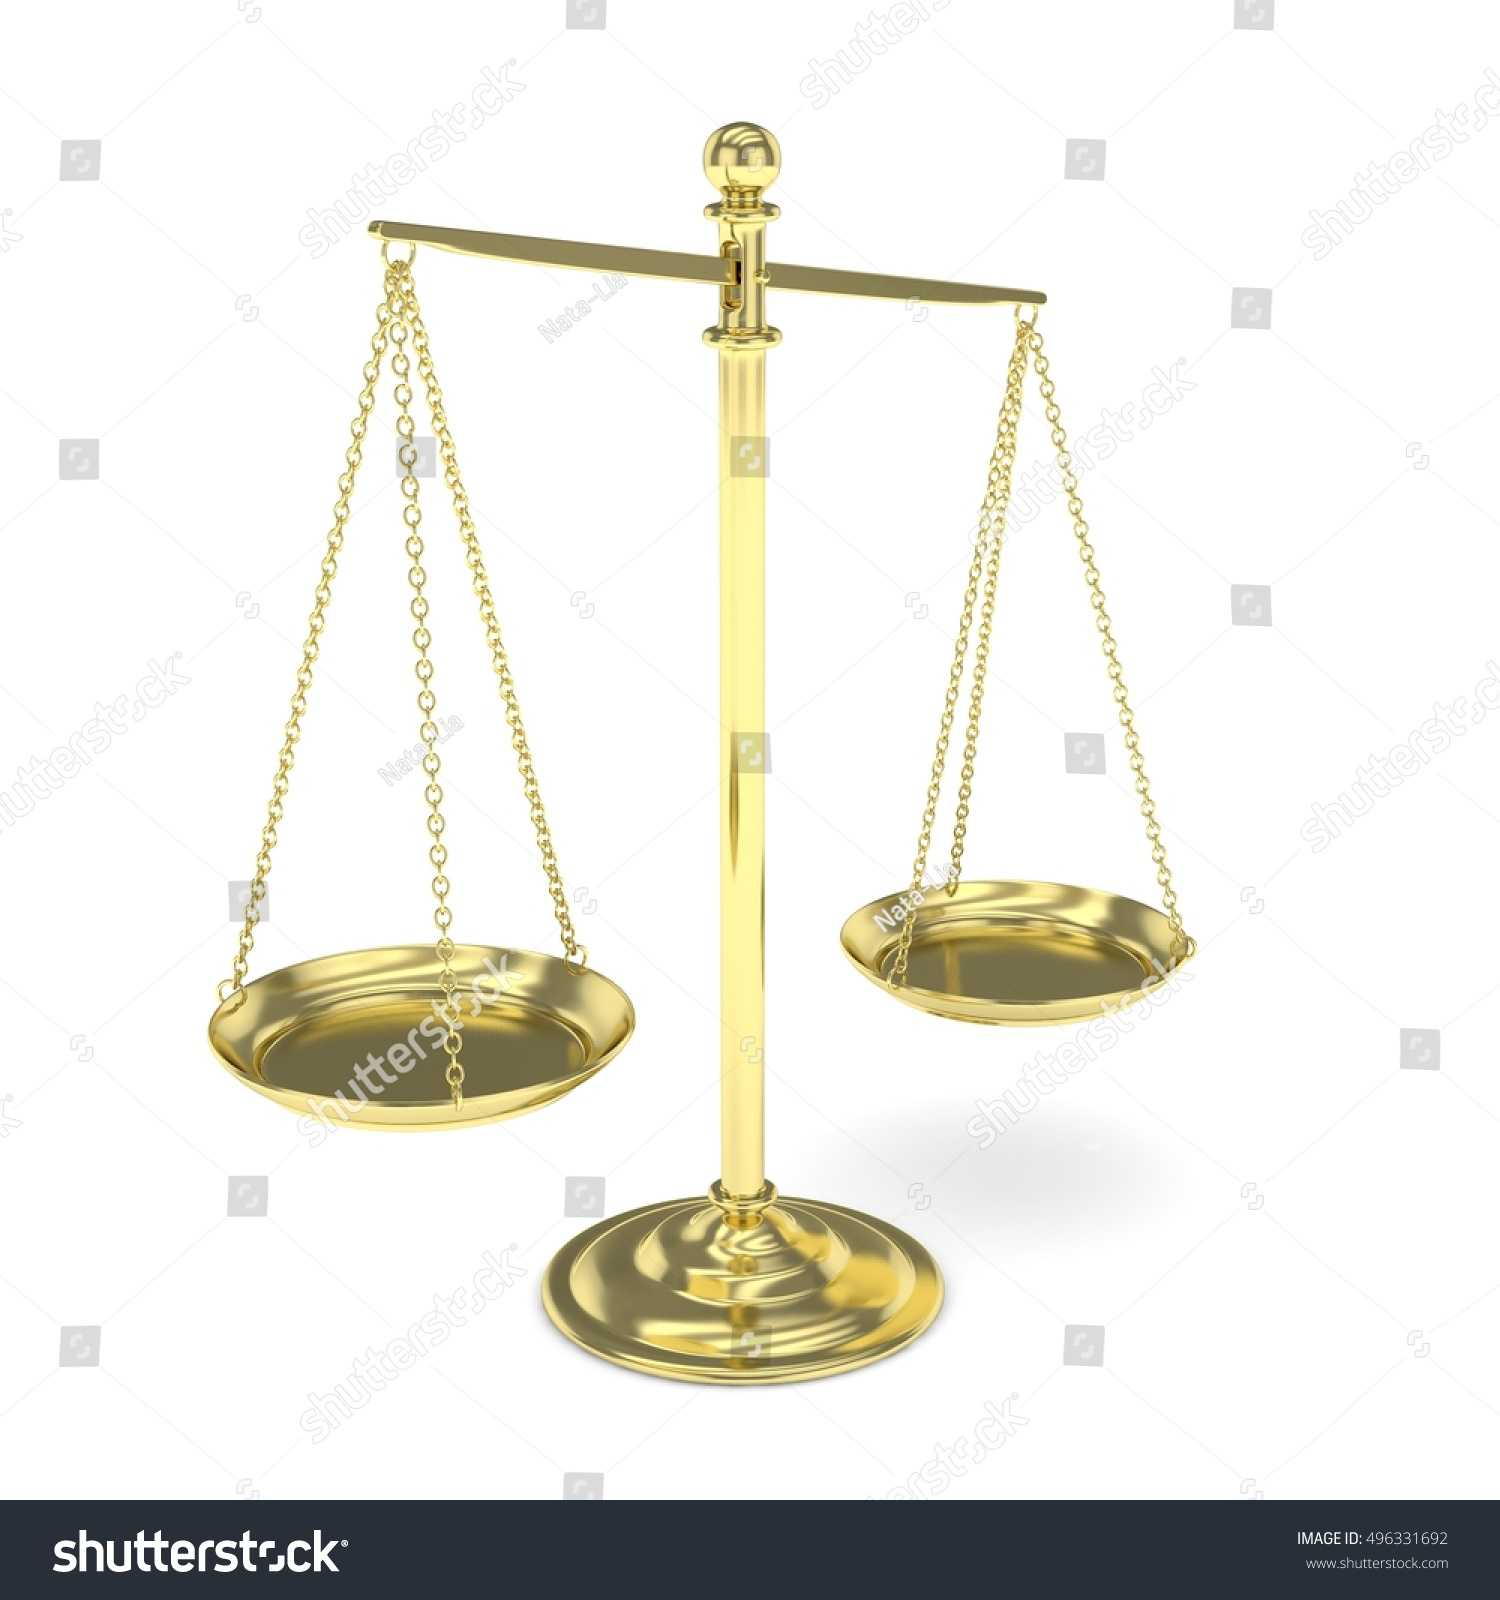 Isolated Golden Scales On White Background Symbol Of Judgement Law